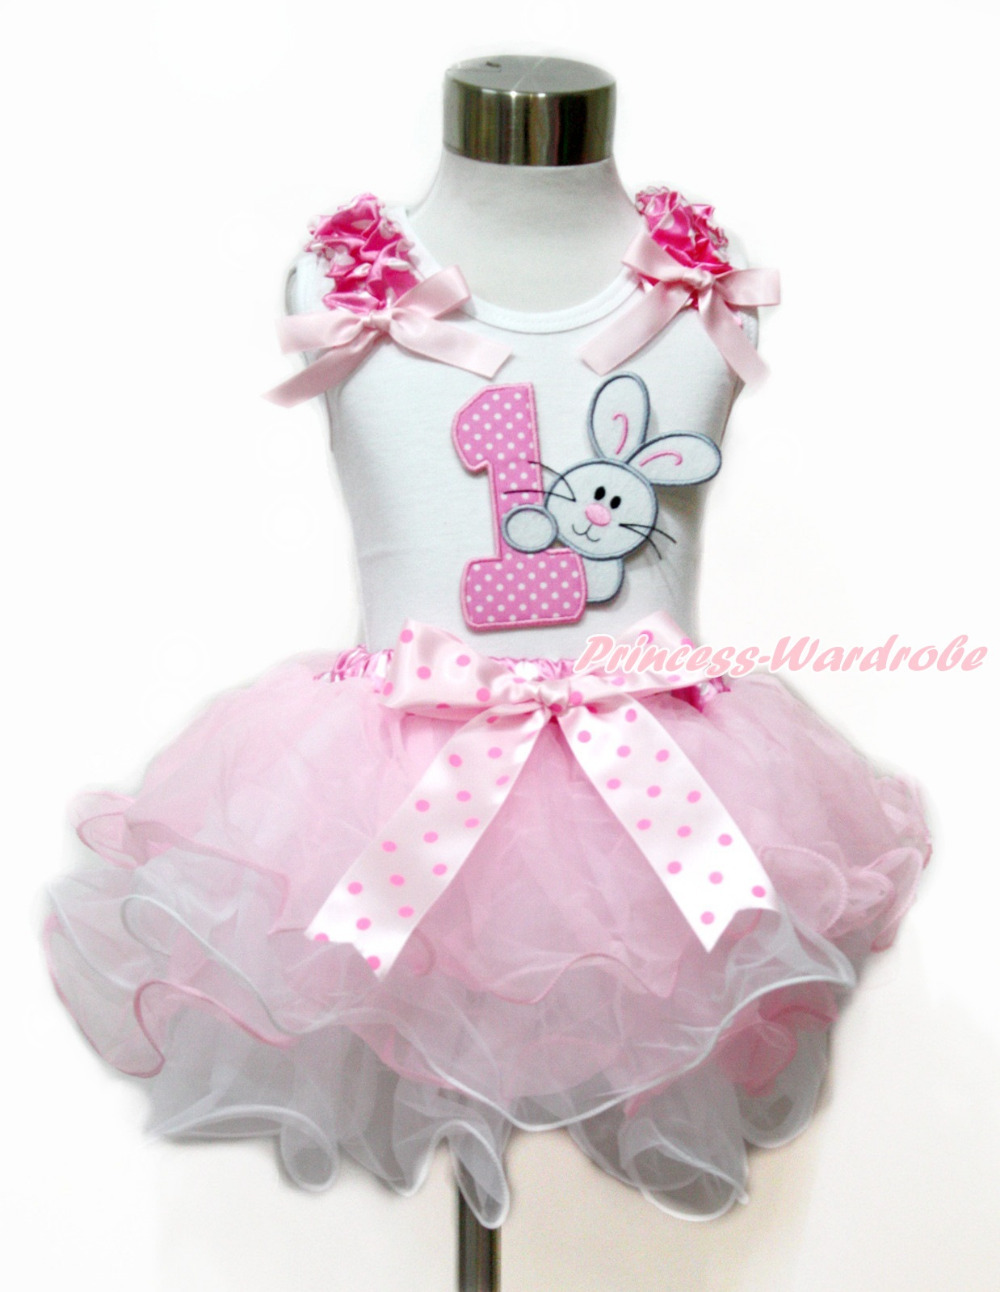 ФОТО Easter White Tank Top Hot Pink Bow 1st Pink White Dots Number & Bunny Rabbit White Pink Dots Bow Petal Pettiskirt MAMG1104